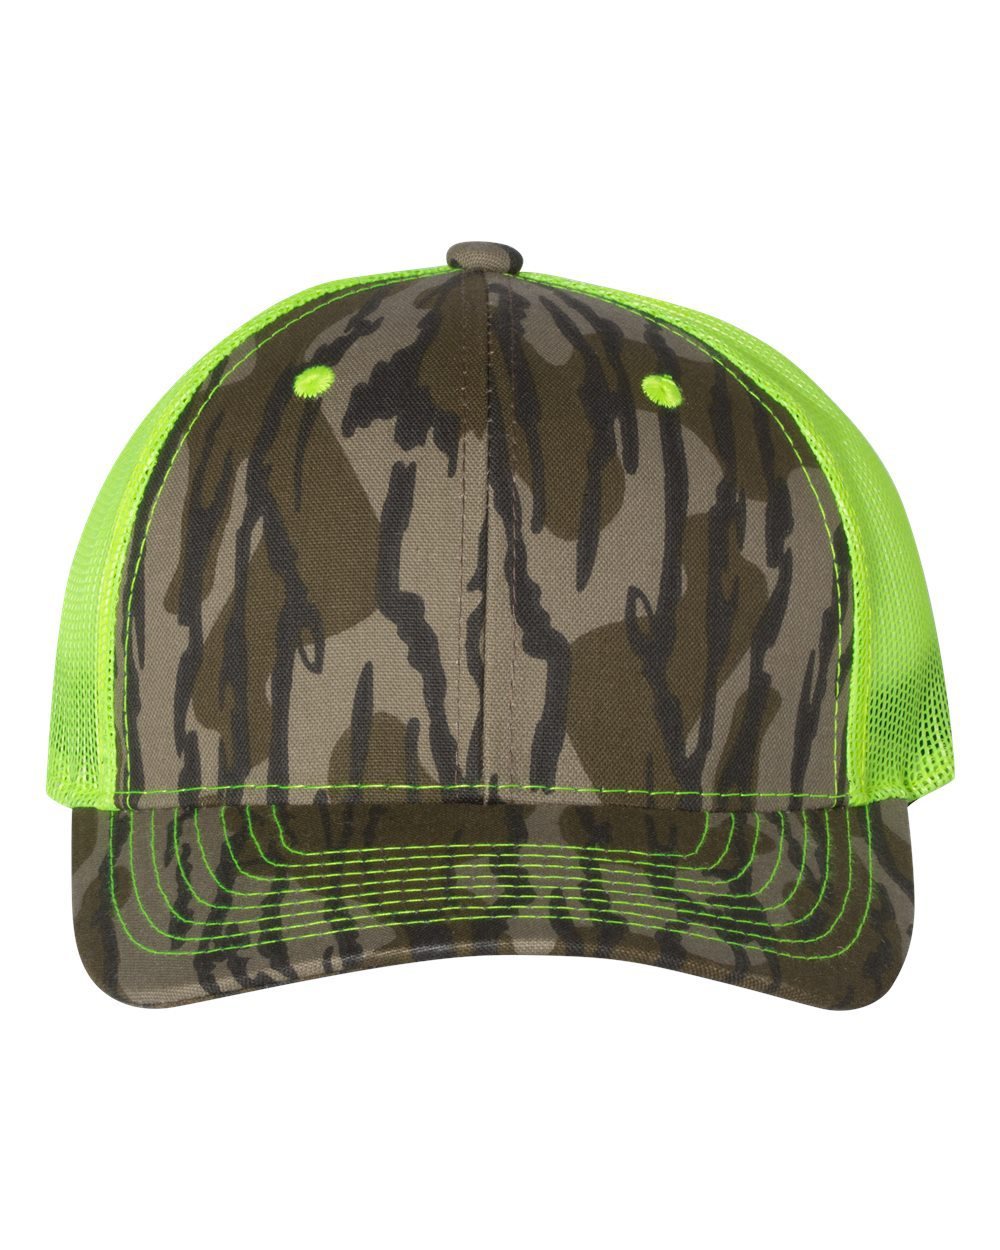 00af911336c5f Outdoor Cap Camo Cap with Neon Mesh Back CNM100M [$7.83] | Hosiery ...